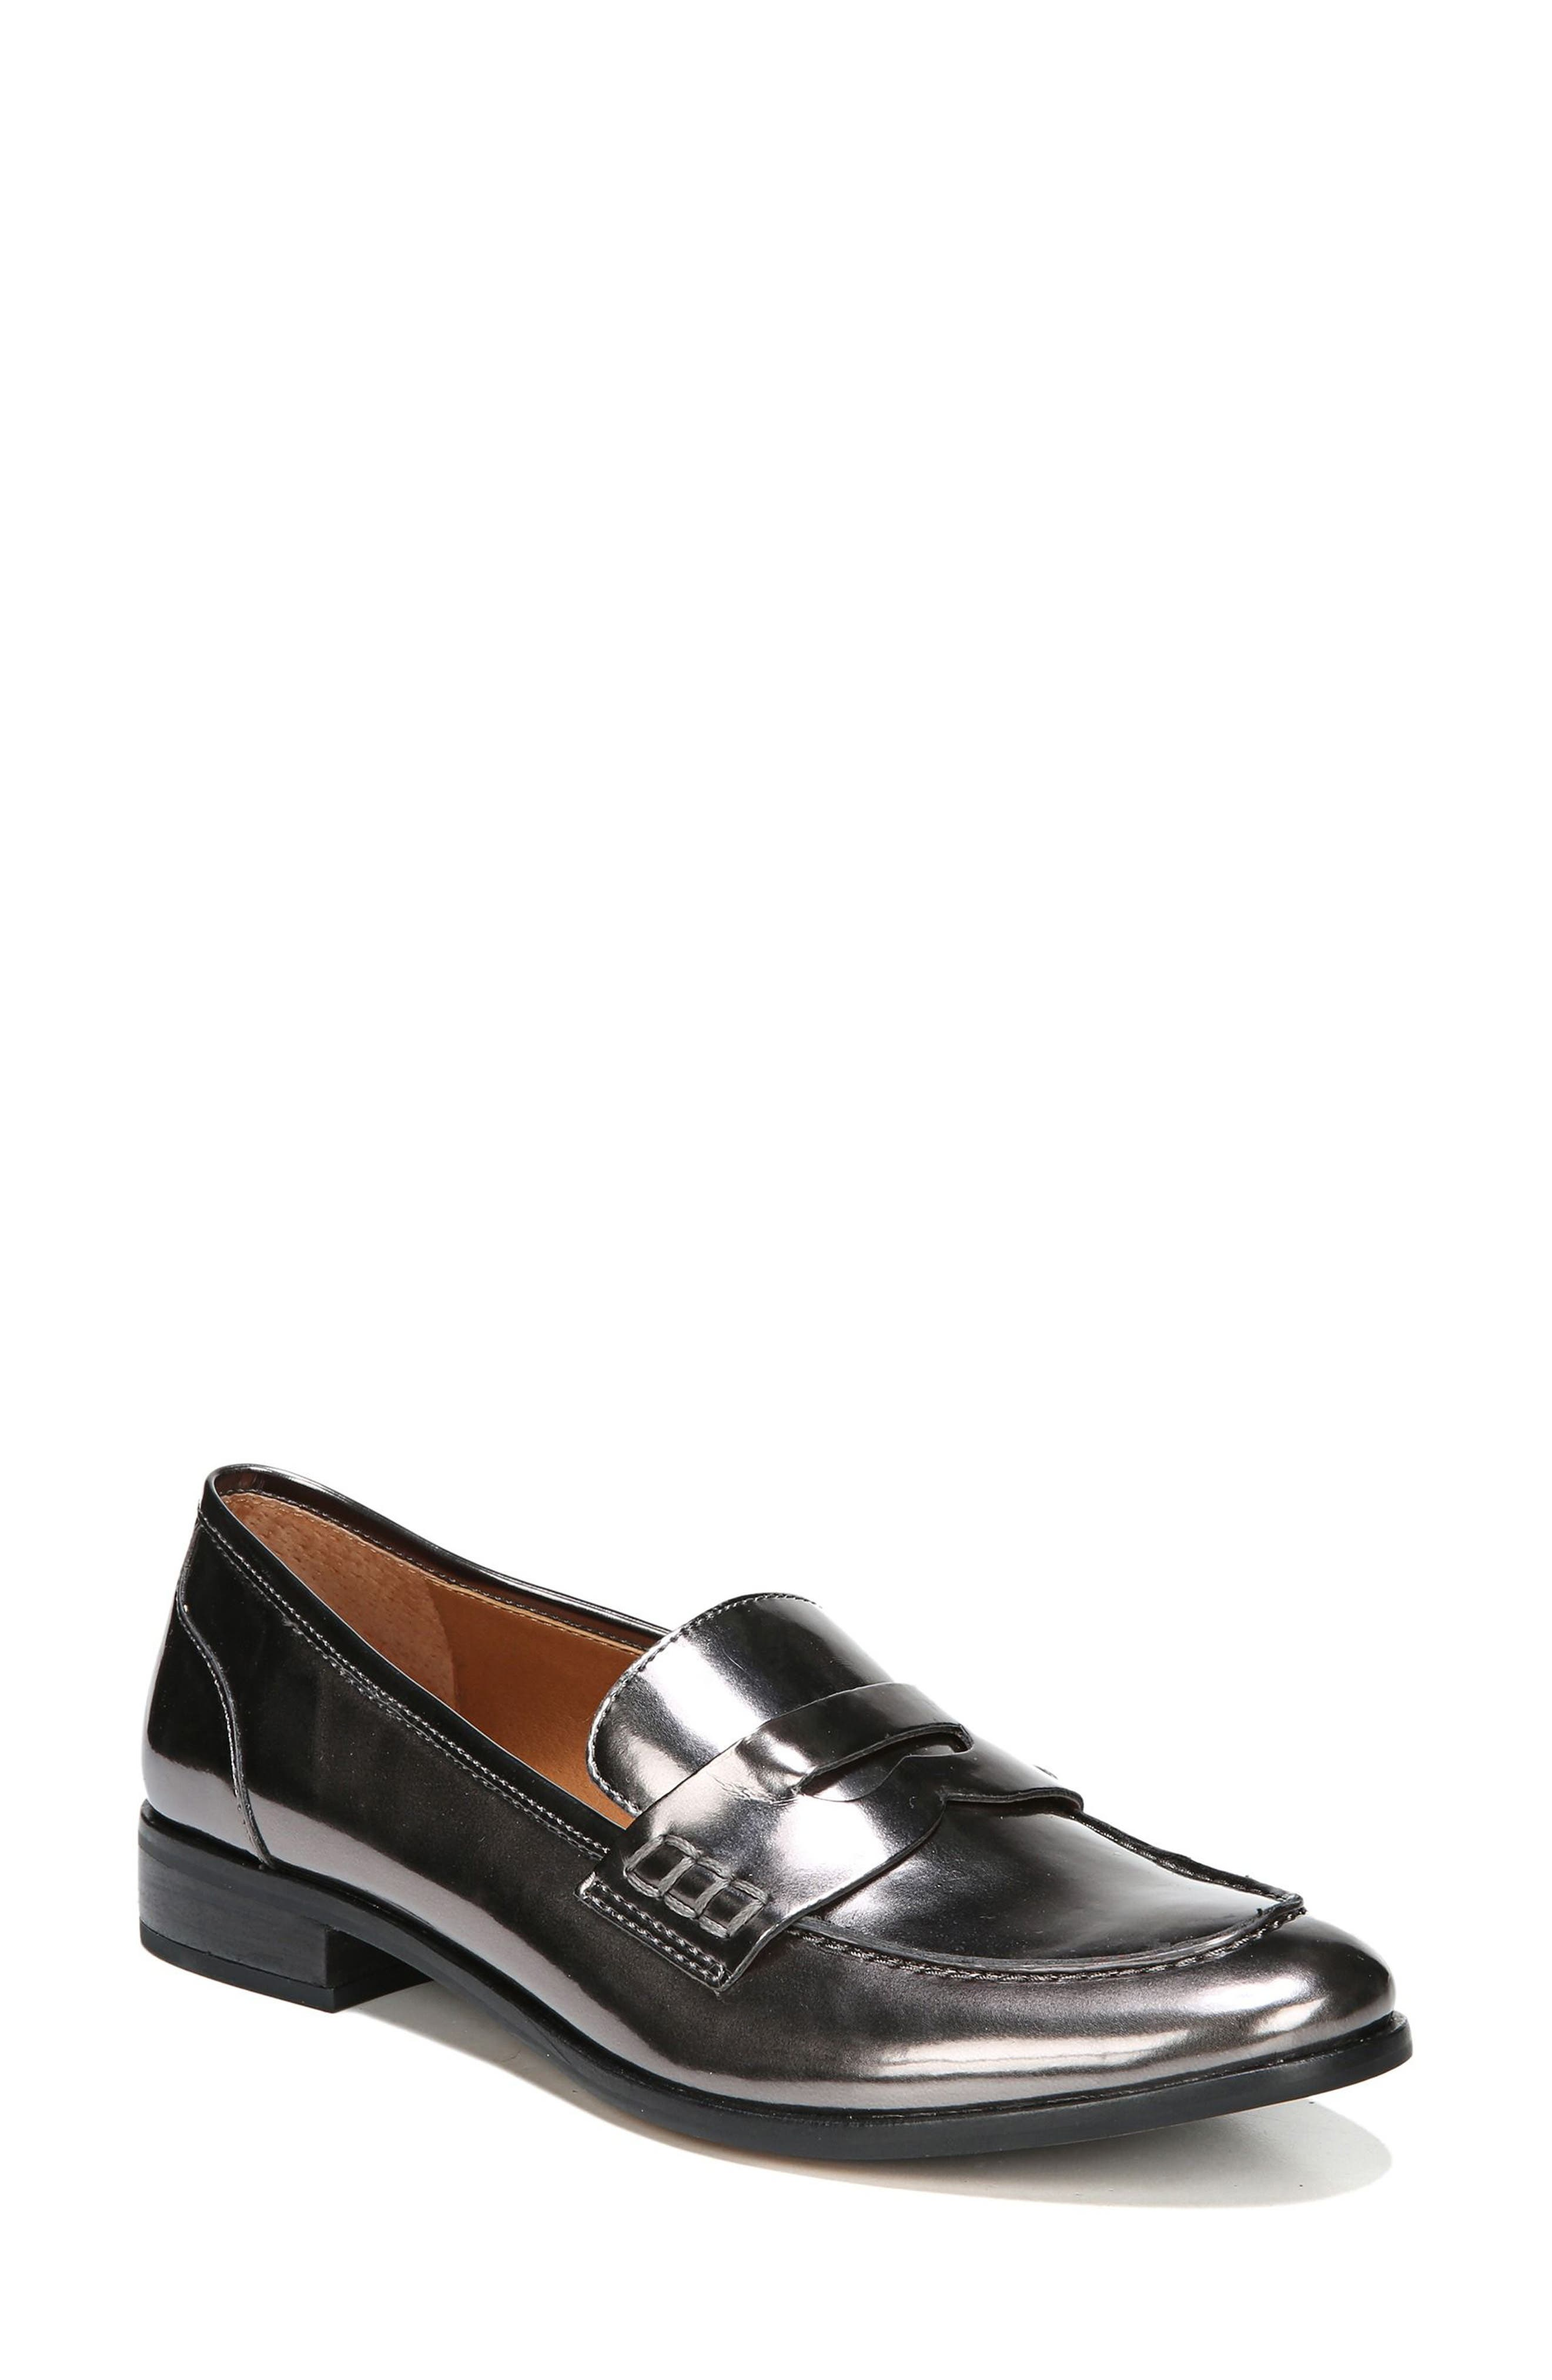 'Jolette' Penny Loafer,                             Main thumbnail 3, color,